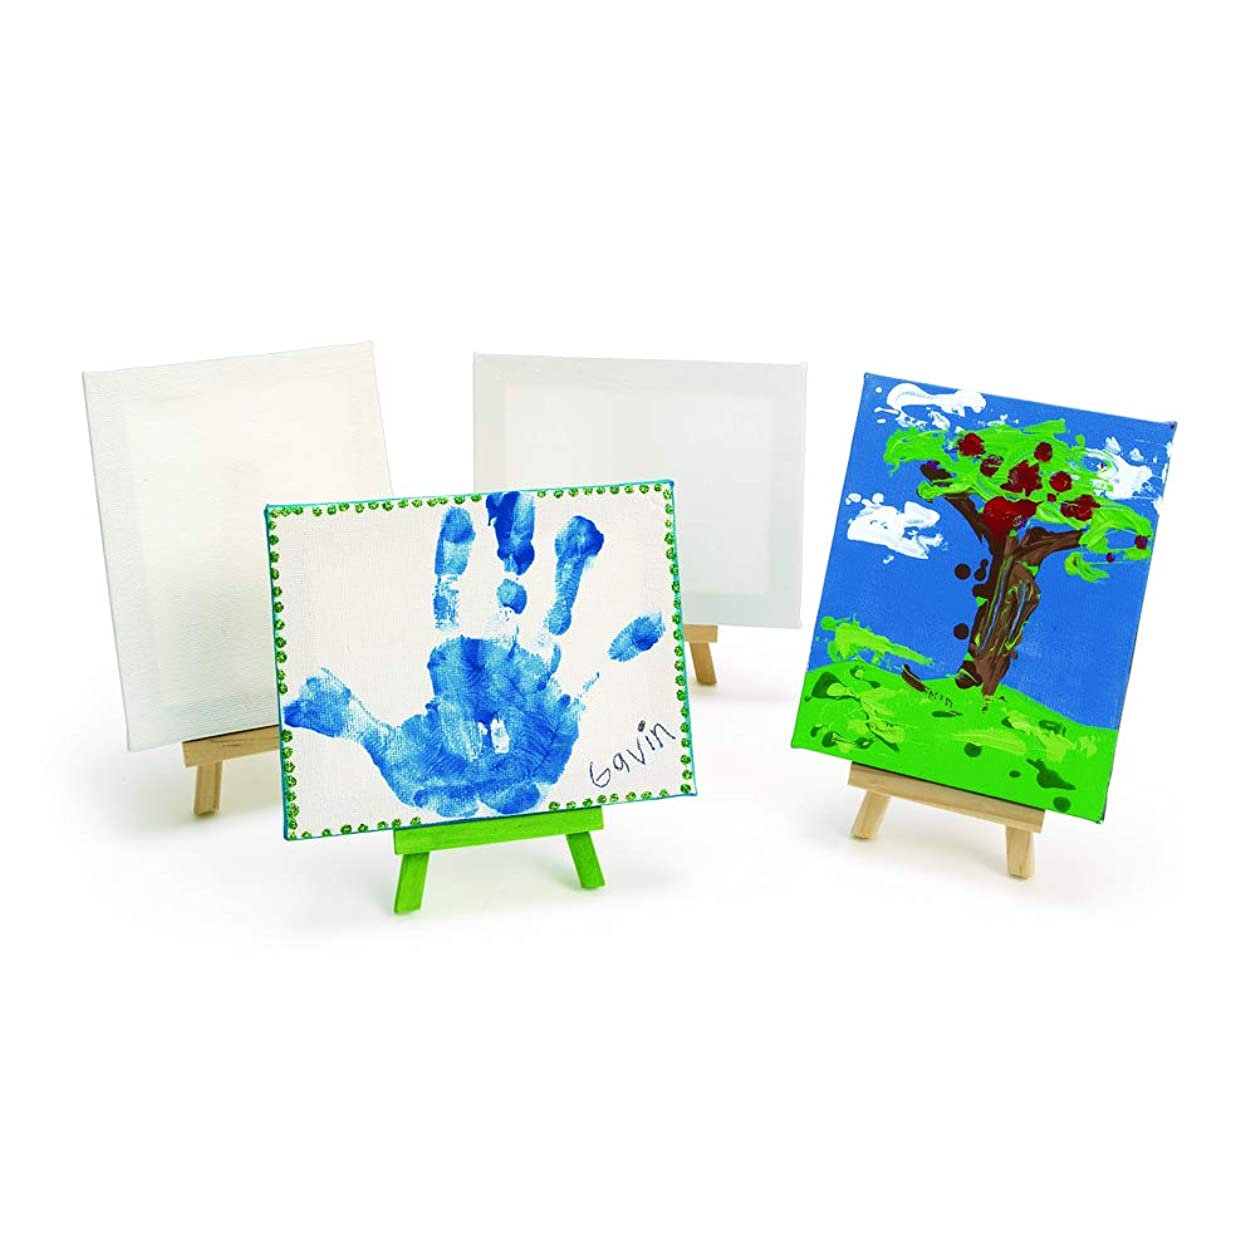 Colorations Pollock Mini Canvases and Easel (Pack of 6) bgemrujmpoljktmt